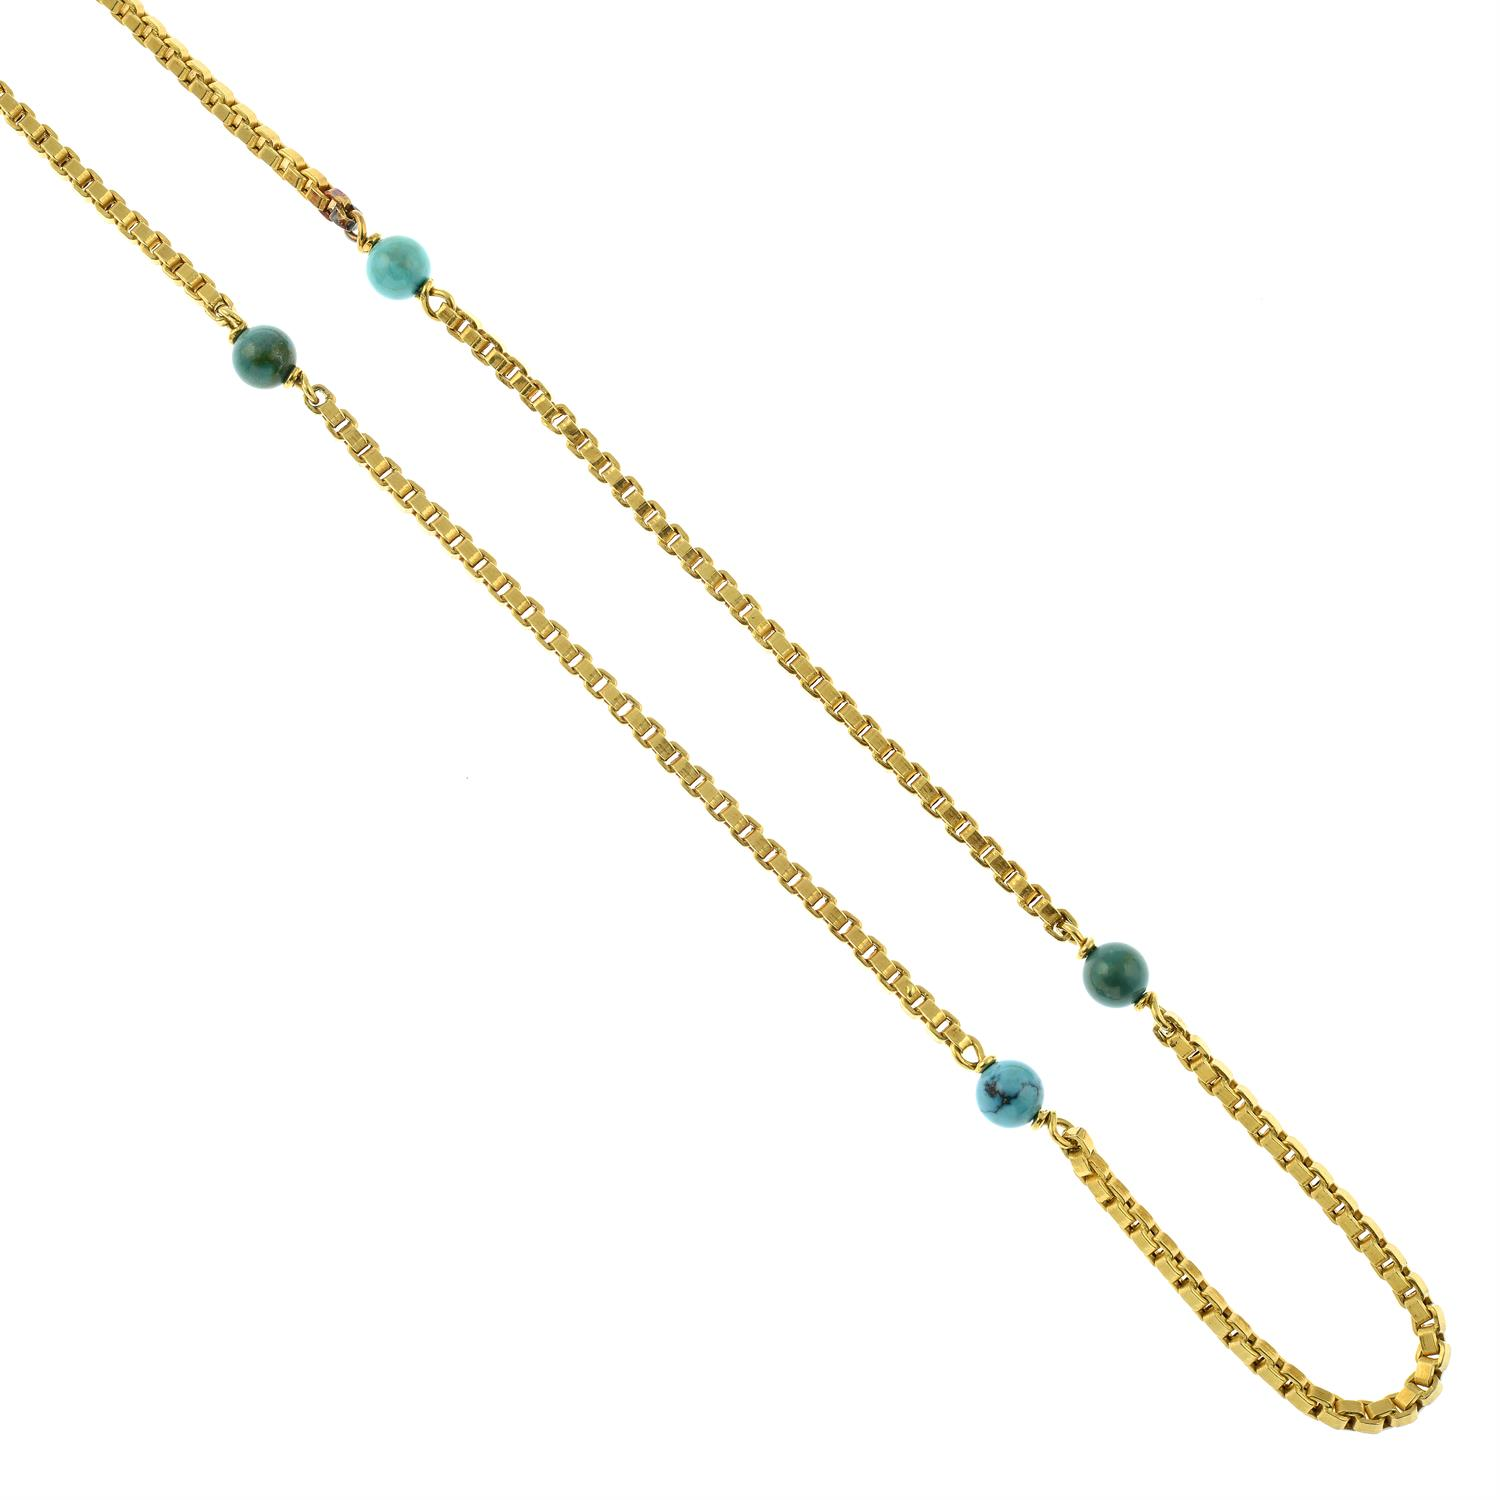 A mid 20th century Italian 18ct gold necklace, with turquoise matrix bead spacers, by Orf. - Image 2 of 5